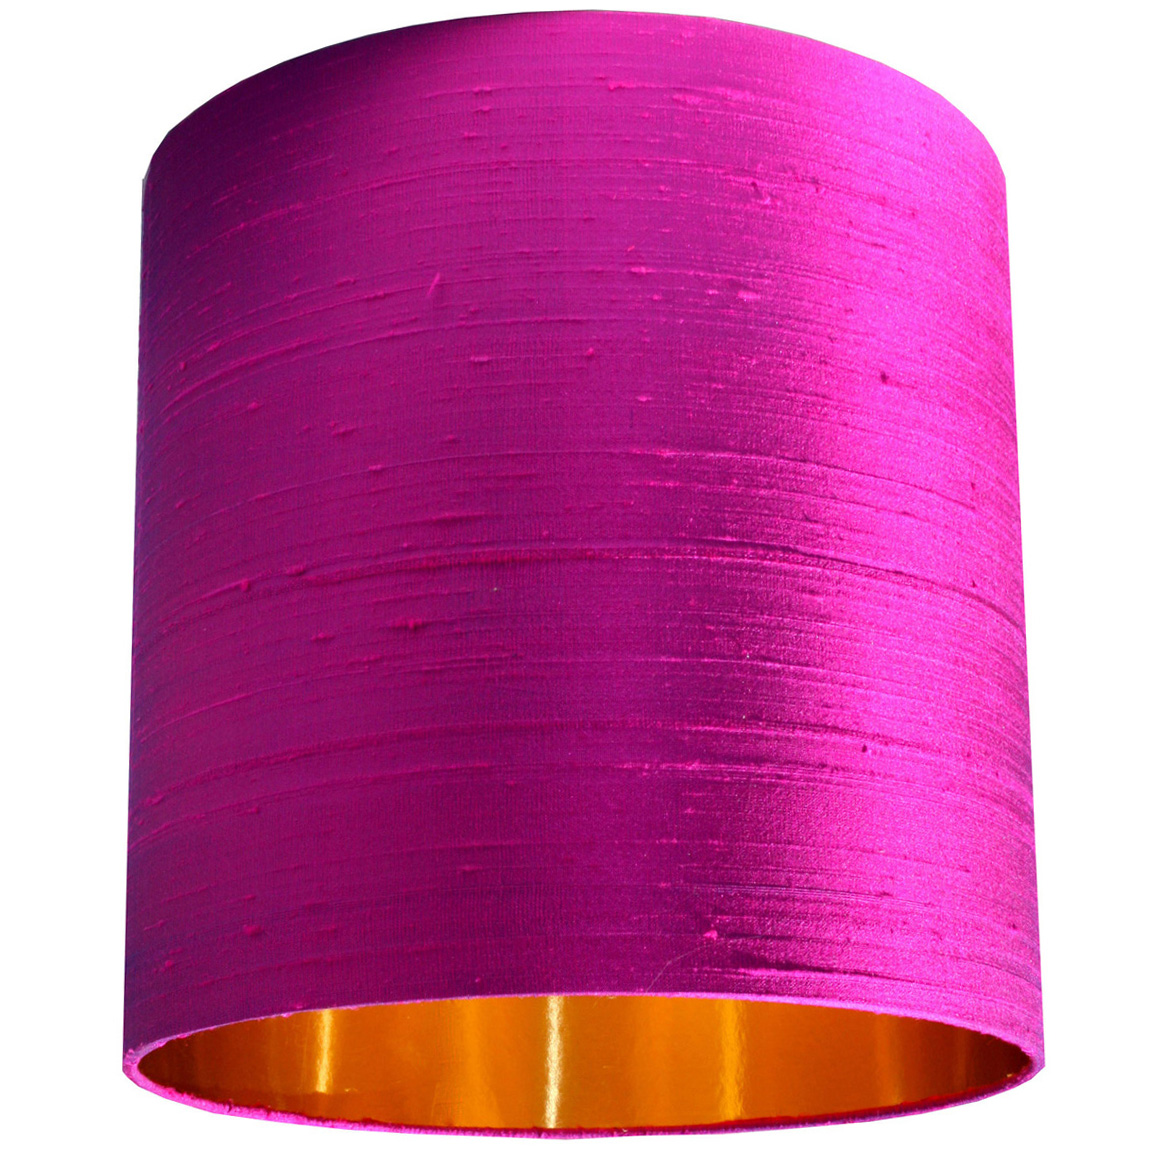 Fuschia pink lamp shade lamp design ideas fuschia pink lamp shade design ideas mozeypictures Gallery